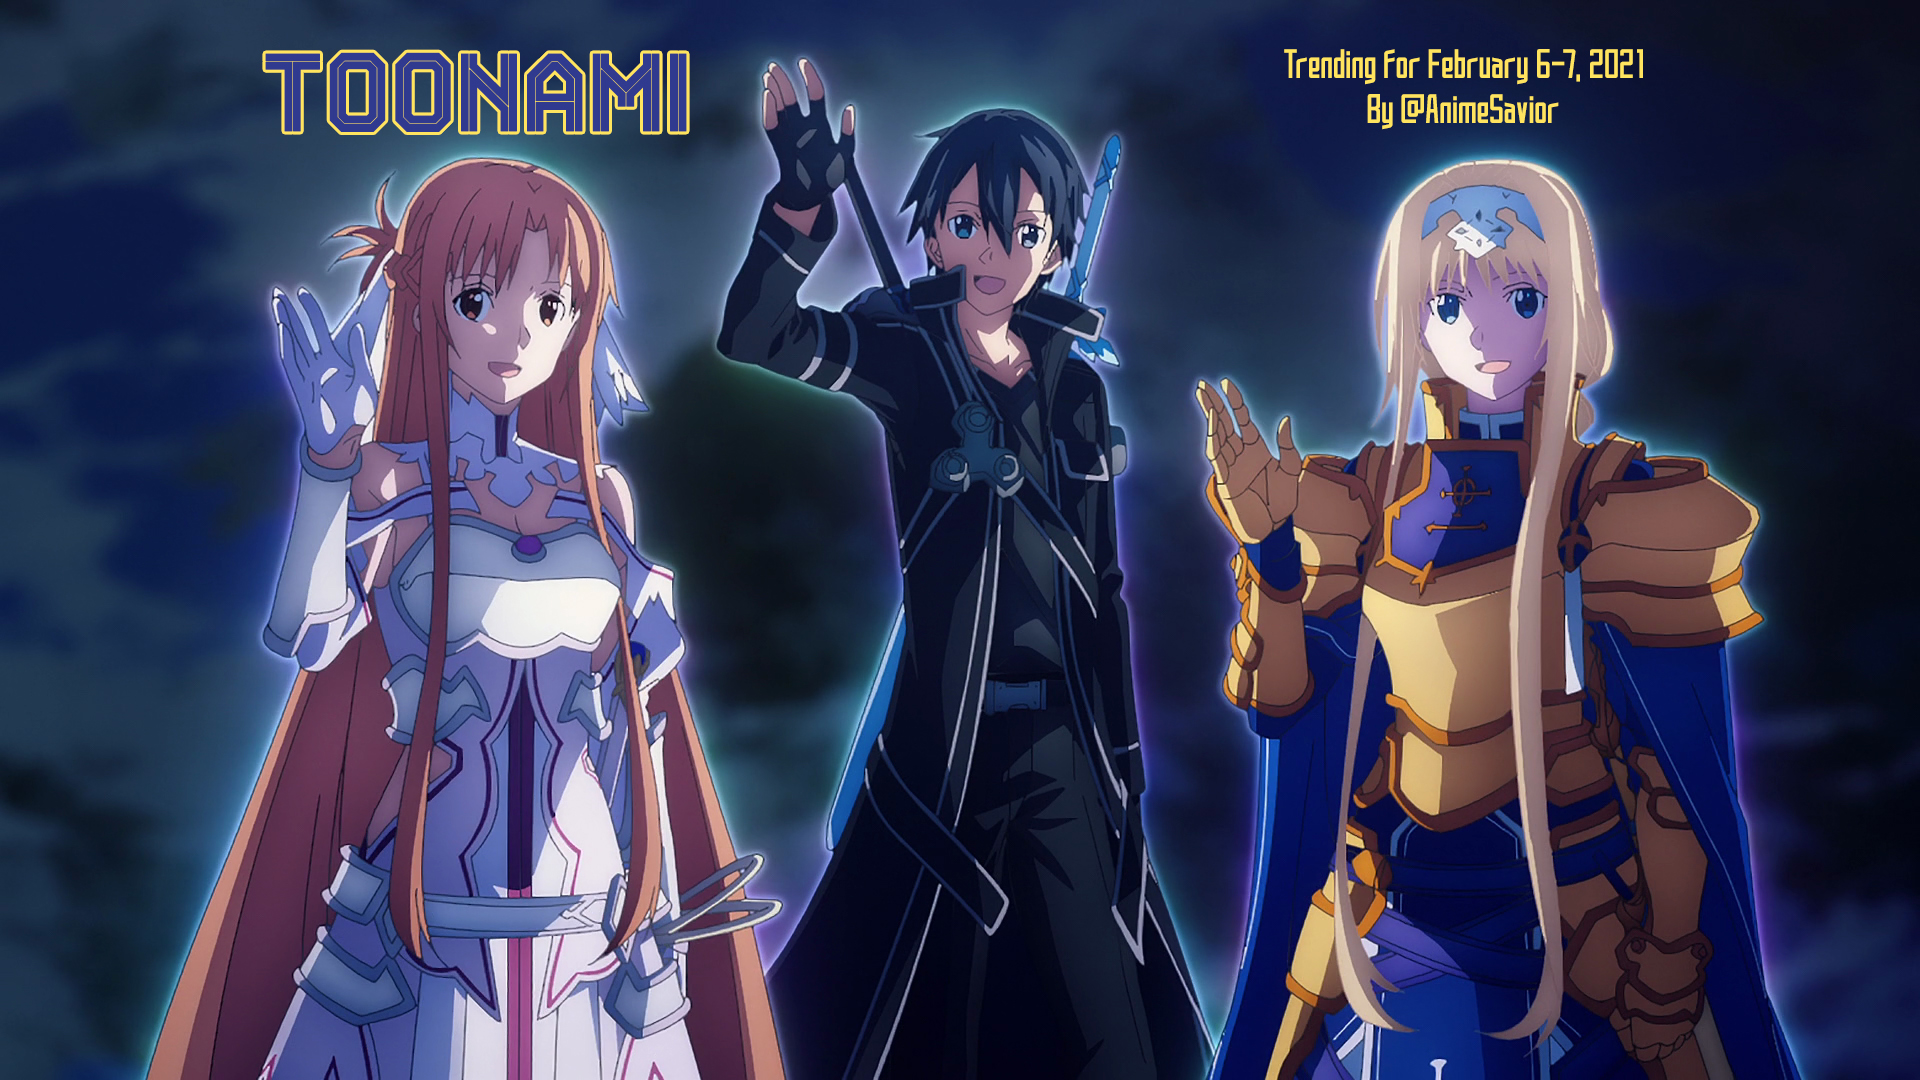 Toonami Trending Rundown for February 6-7, 2021